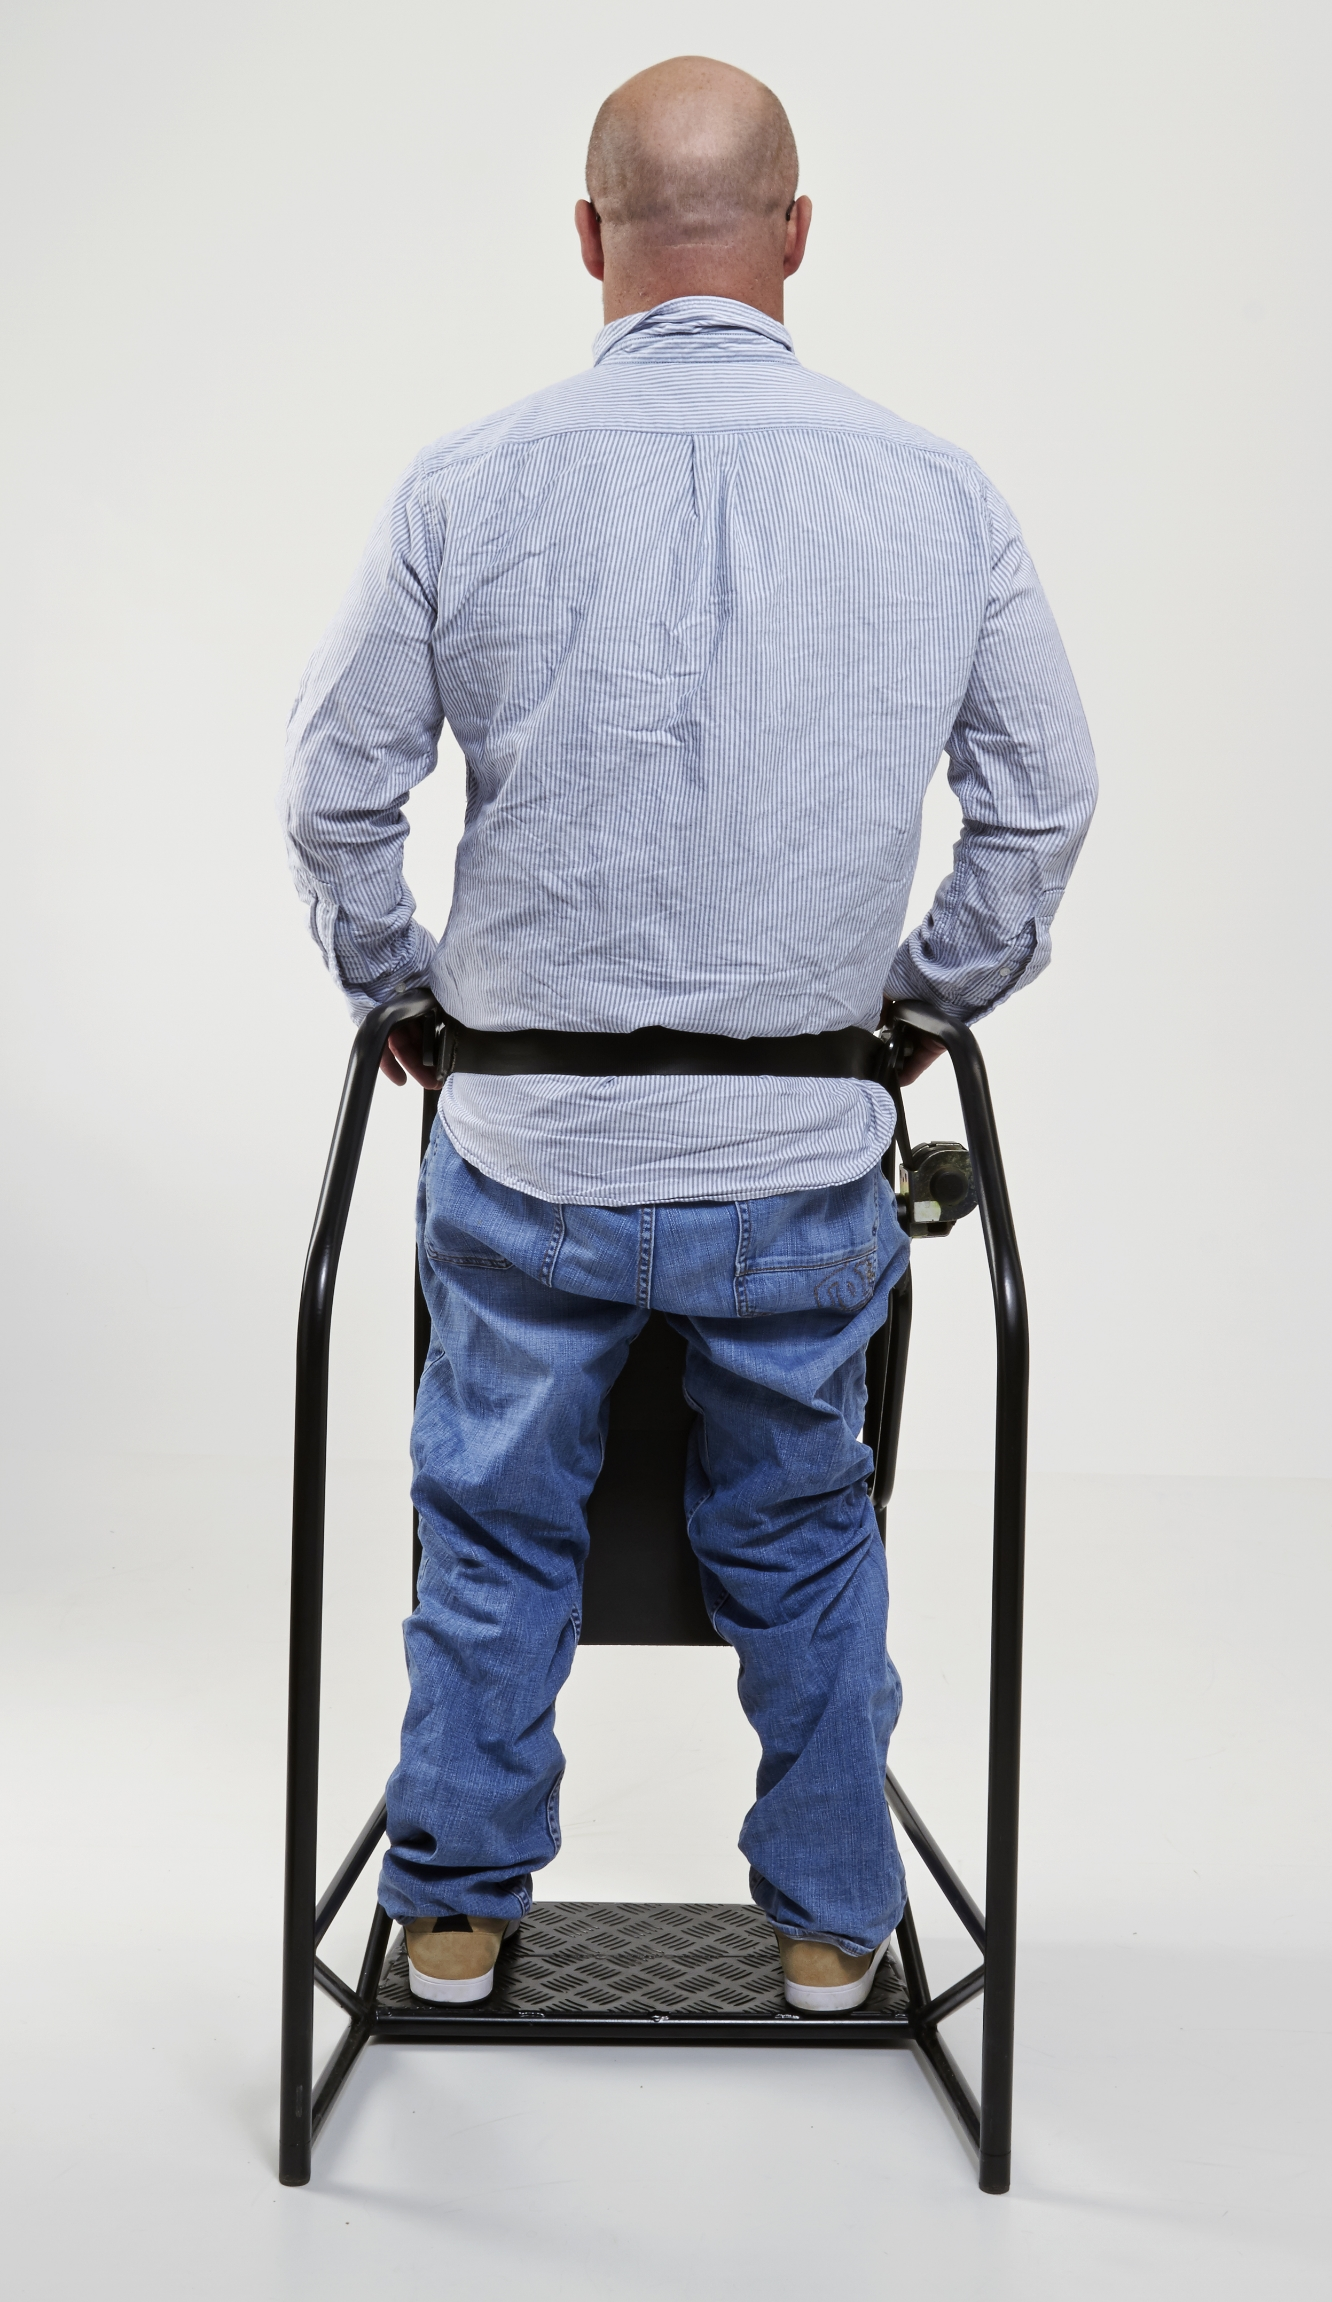 Frames are custom made, adjusted to individual user's proportions, and supplied with Mikocell knee padding as well as modified safety strap to support hips when standing. The supporting strap is adjustable and self secure.